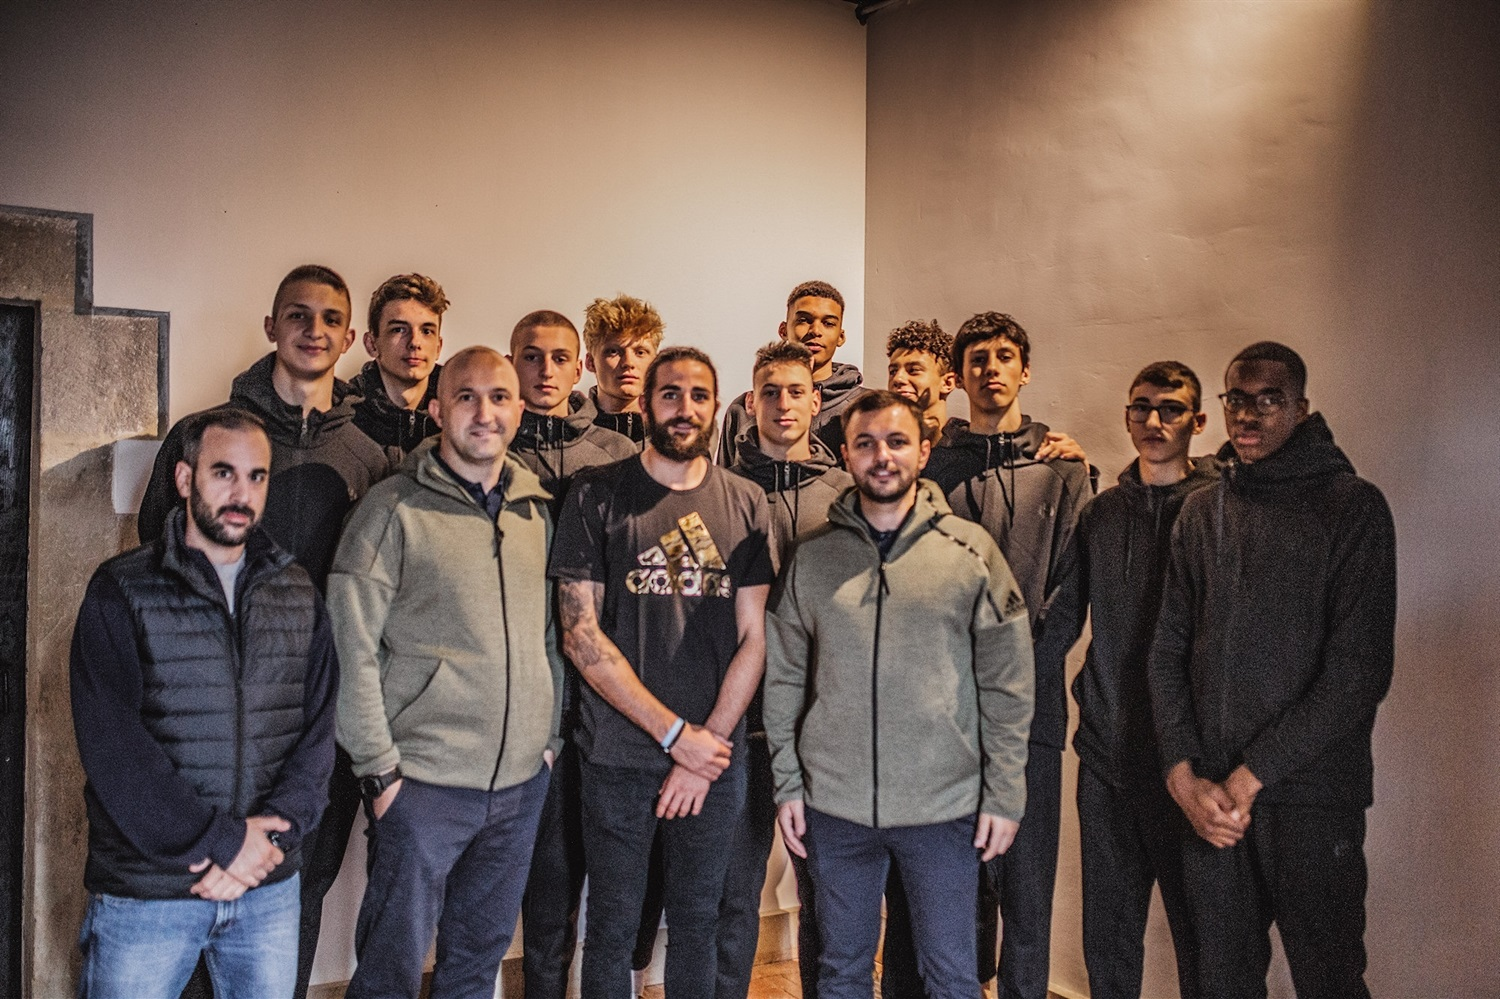 Ricky Rubio with players Team Europe of  International All Star Game presented by adidas - Players Educational Session - JT18